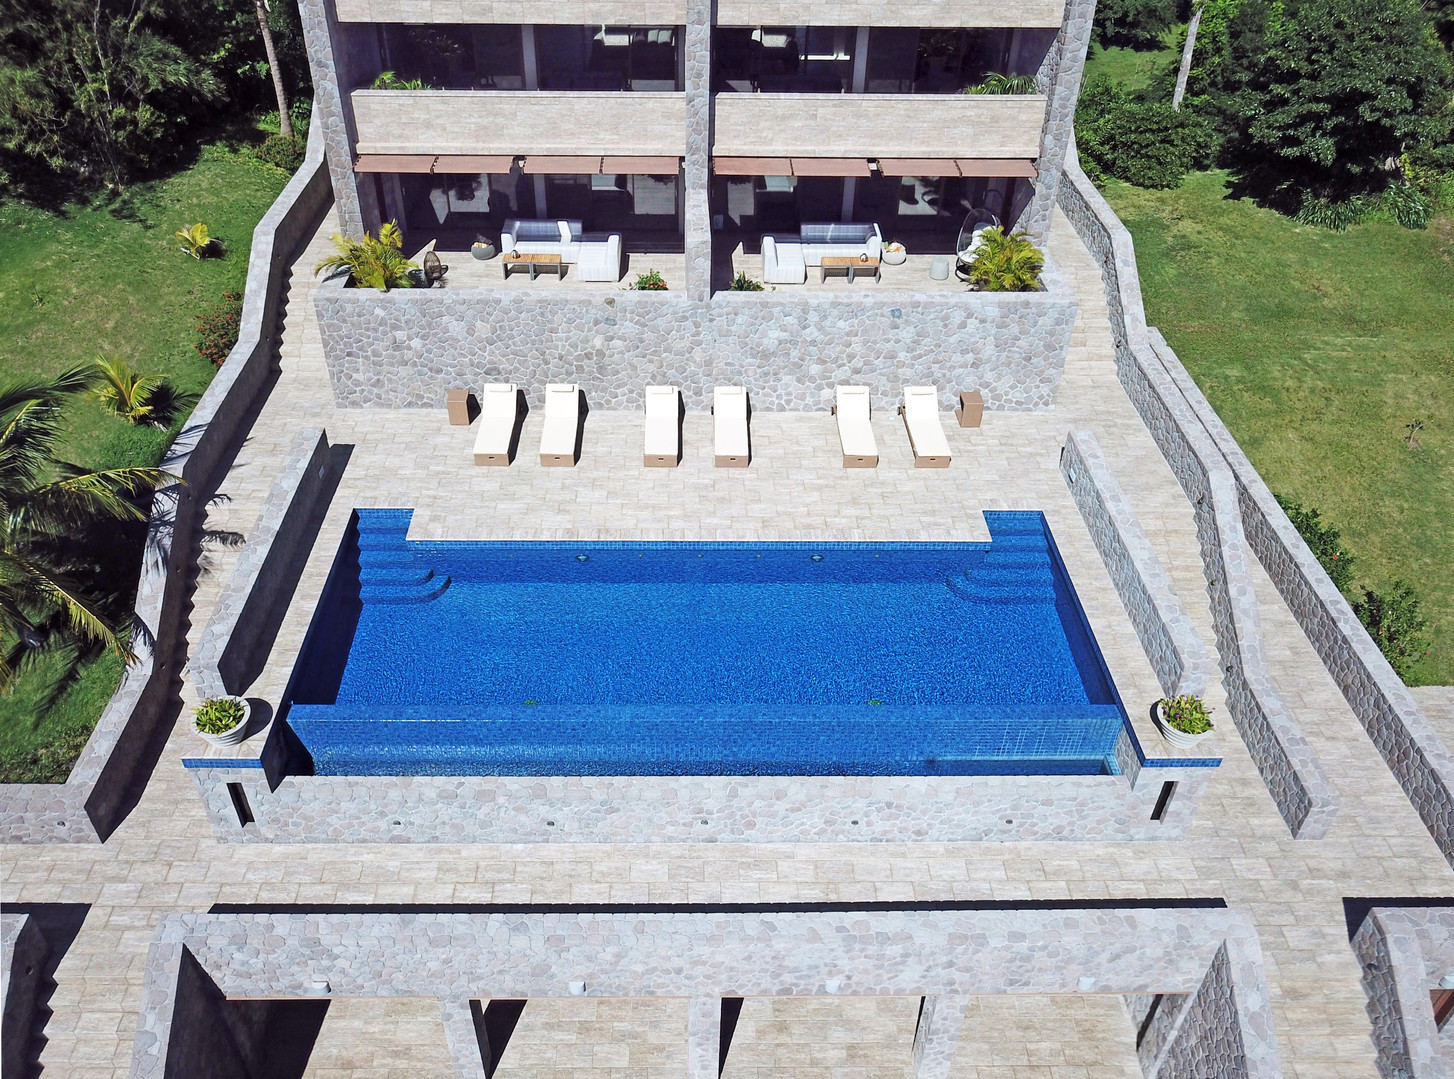 One of two communal pools